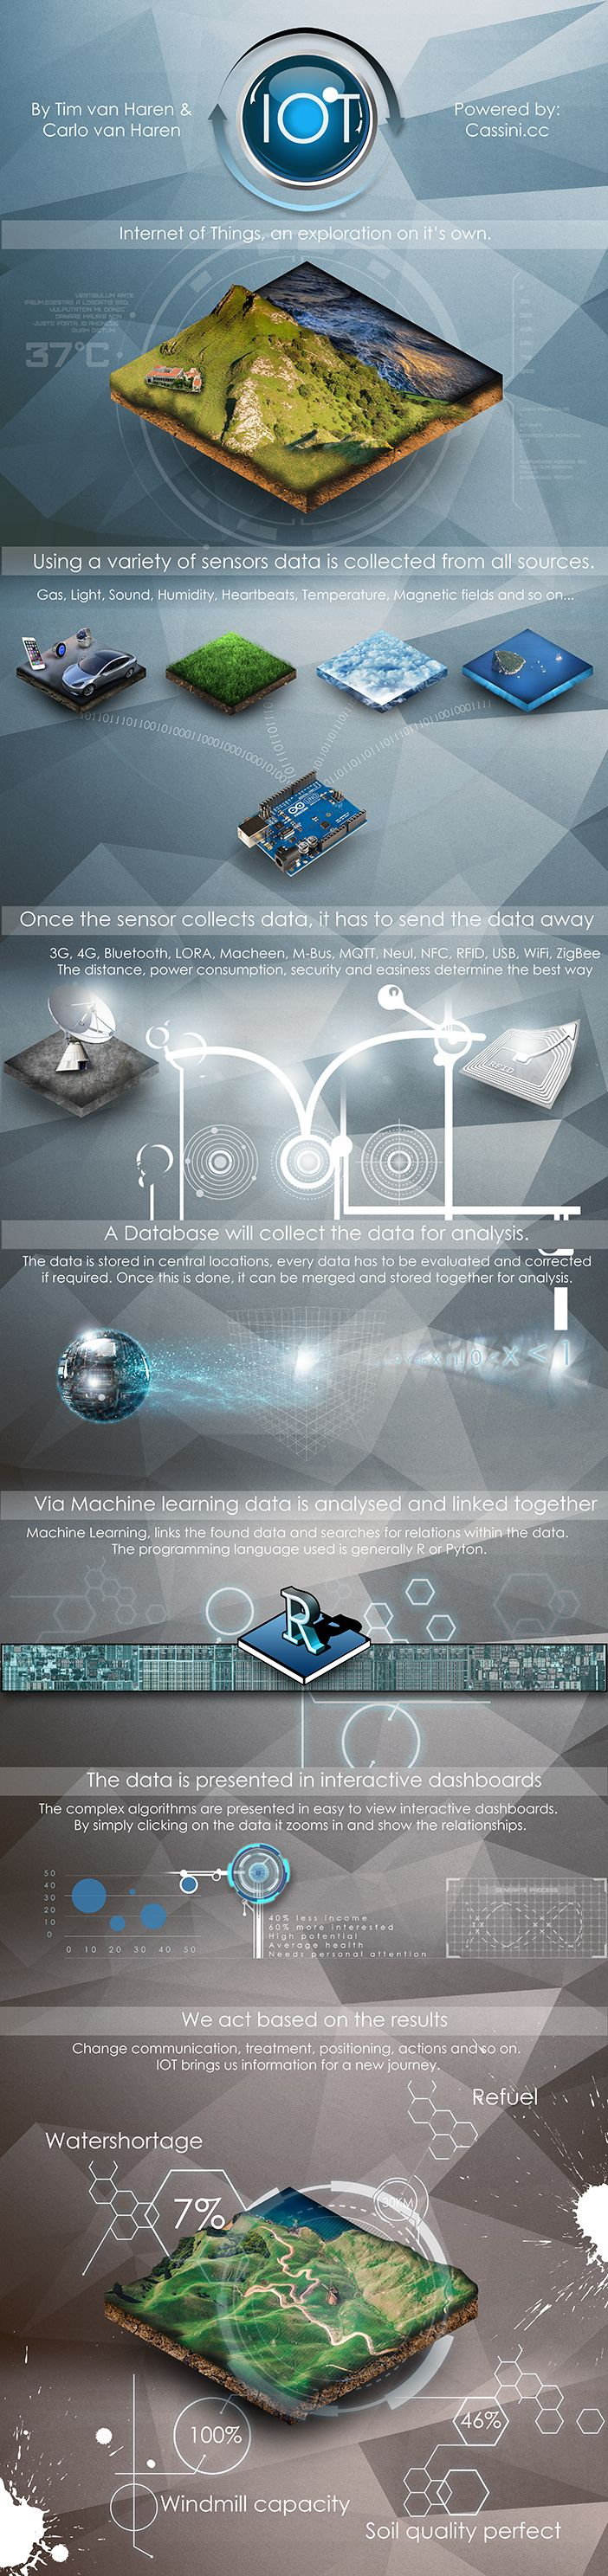 IOT Infographic by Cassini